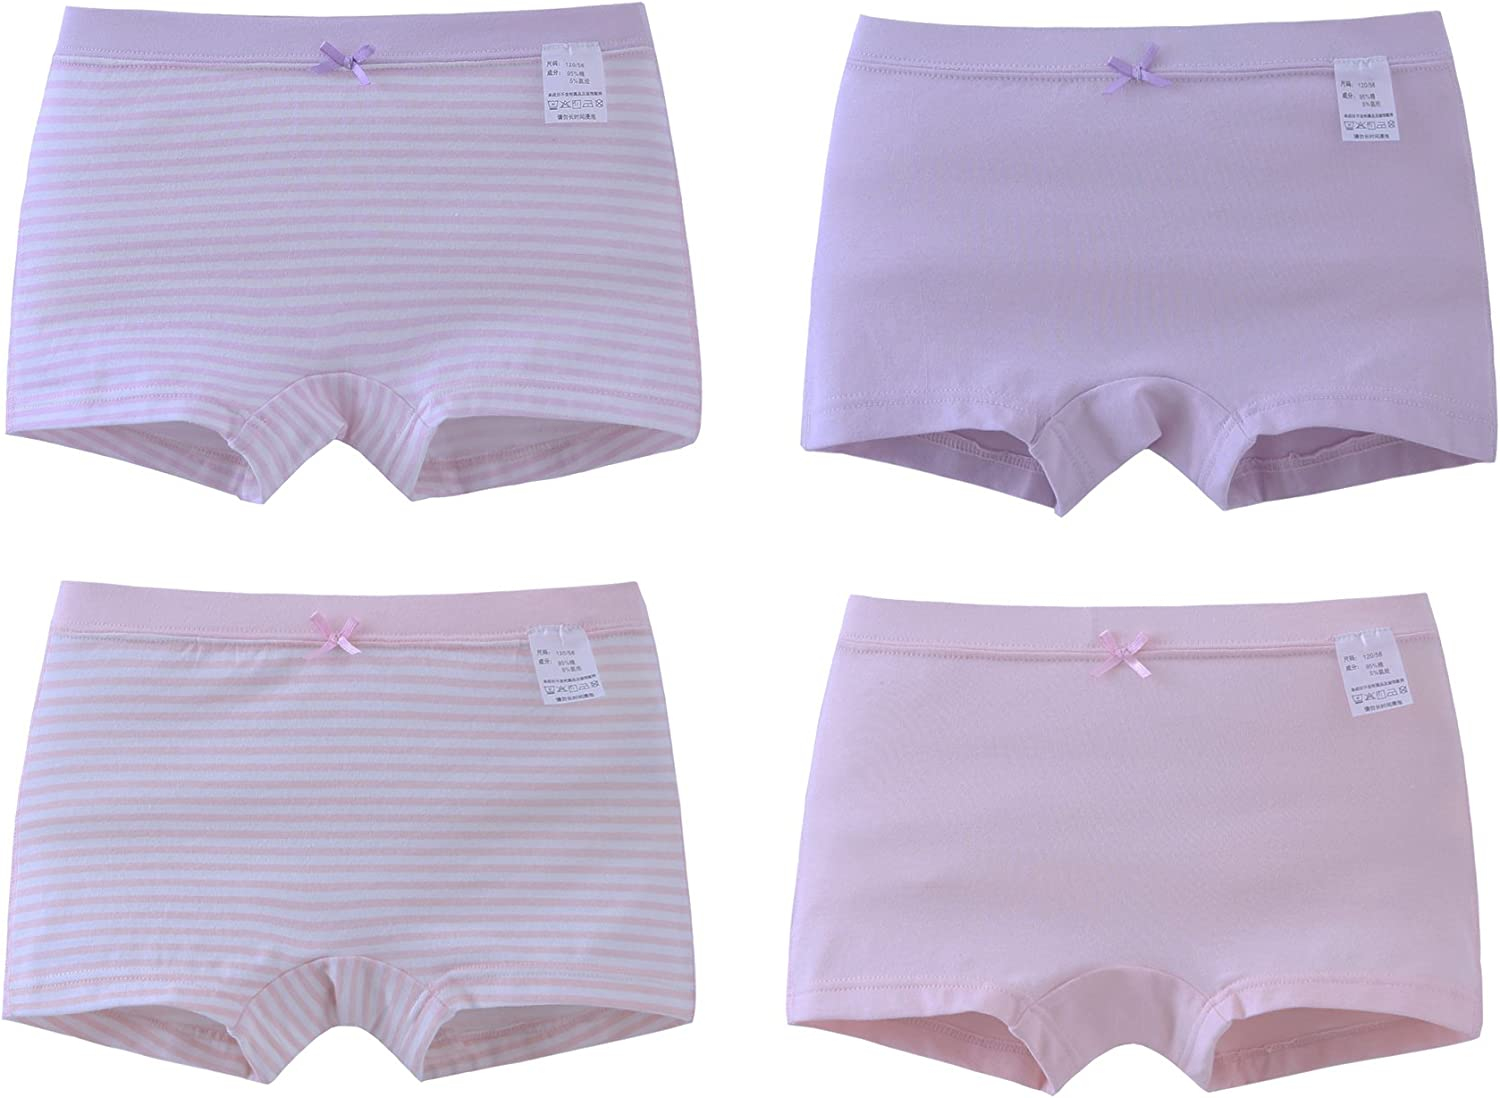 ABClothing Girls Cotton Underwear Assort Colors Pack of 4